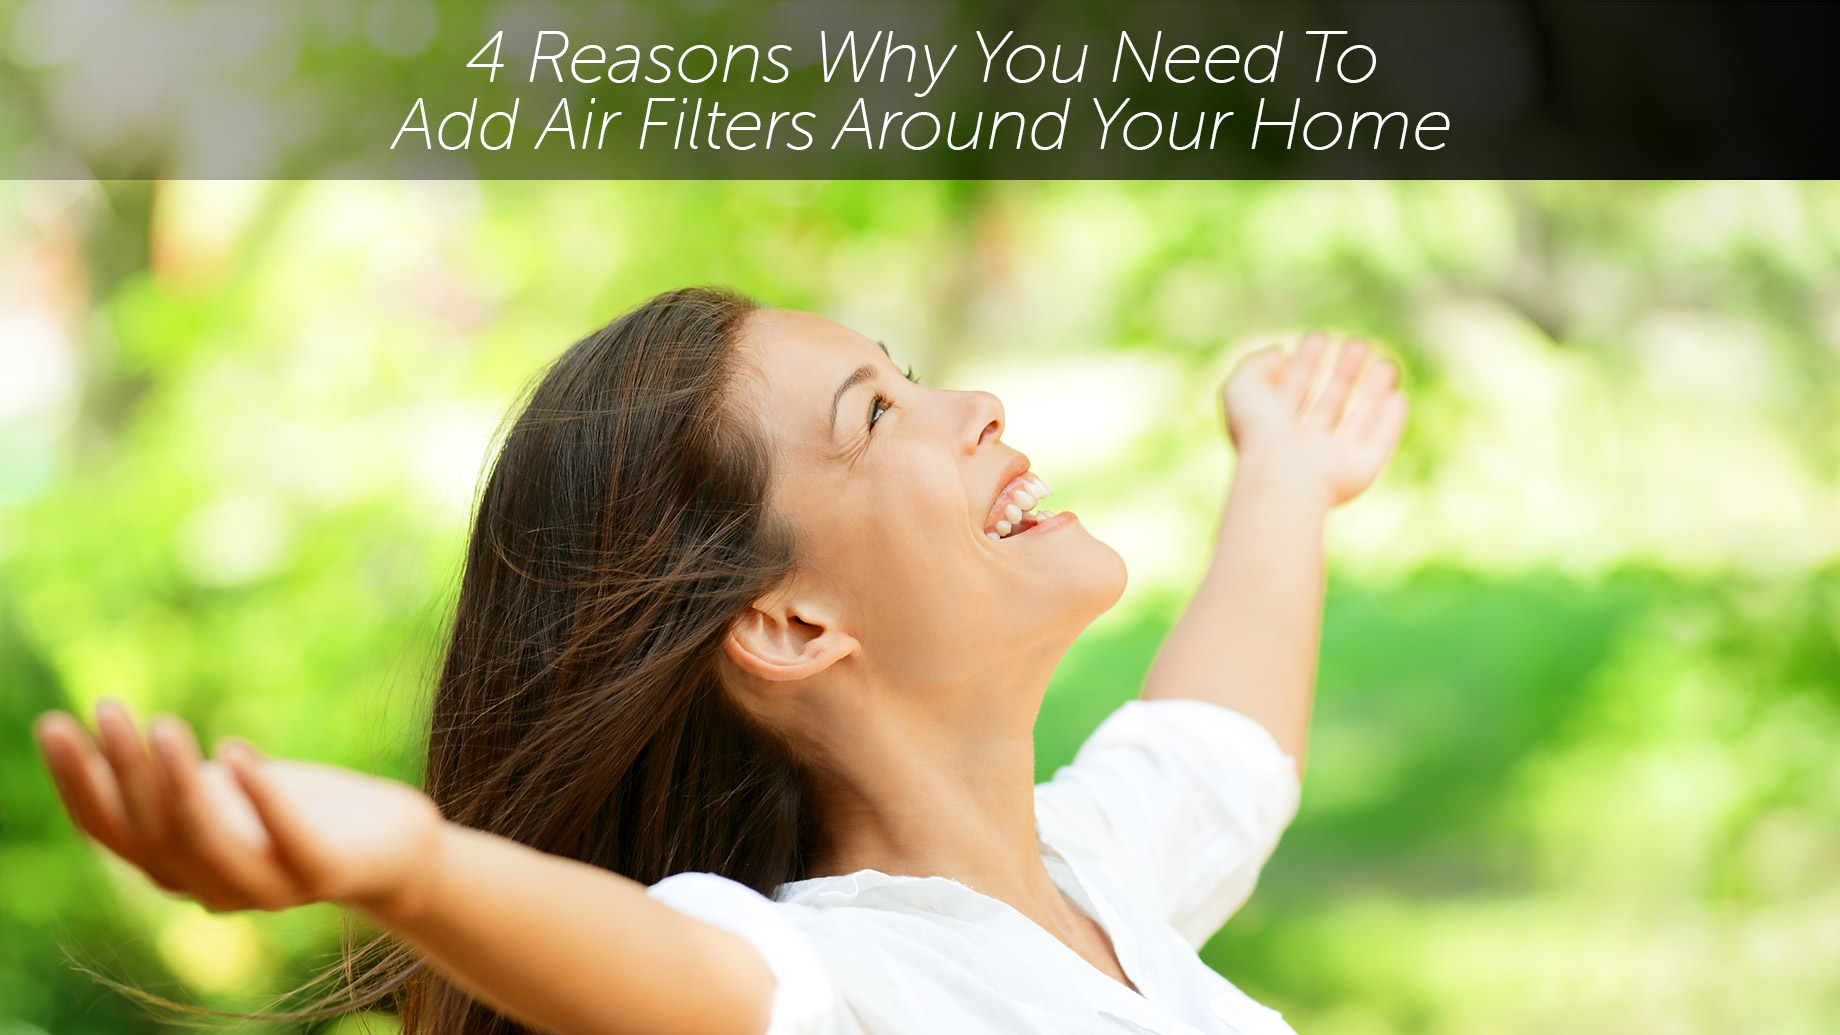 4 Reasons Why You Need To Add Air Filters Around Your Home